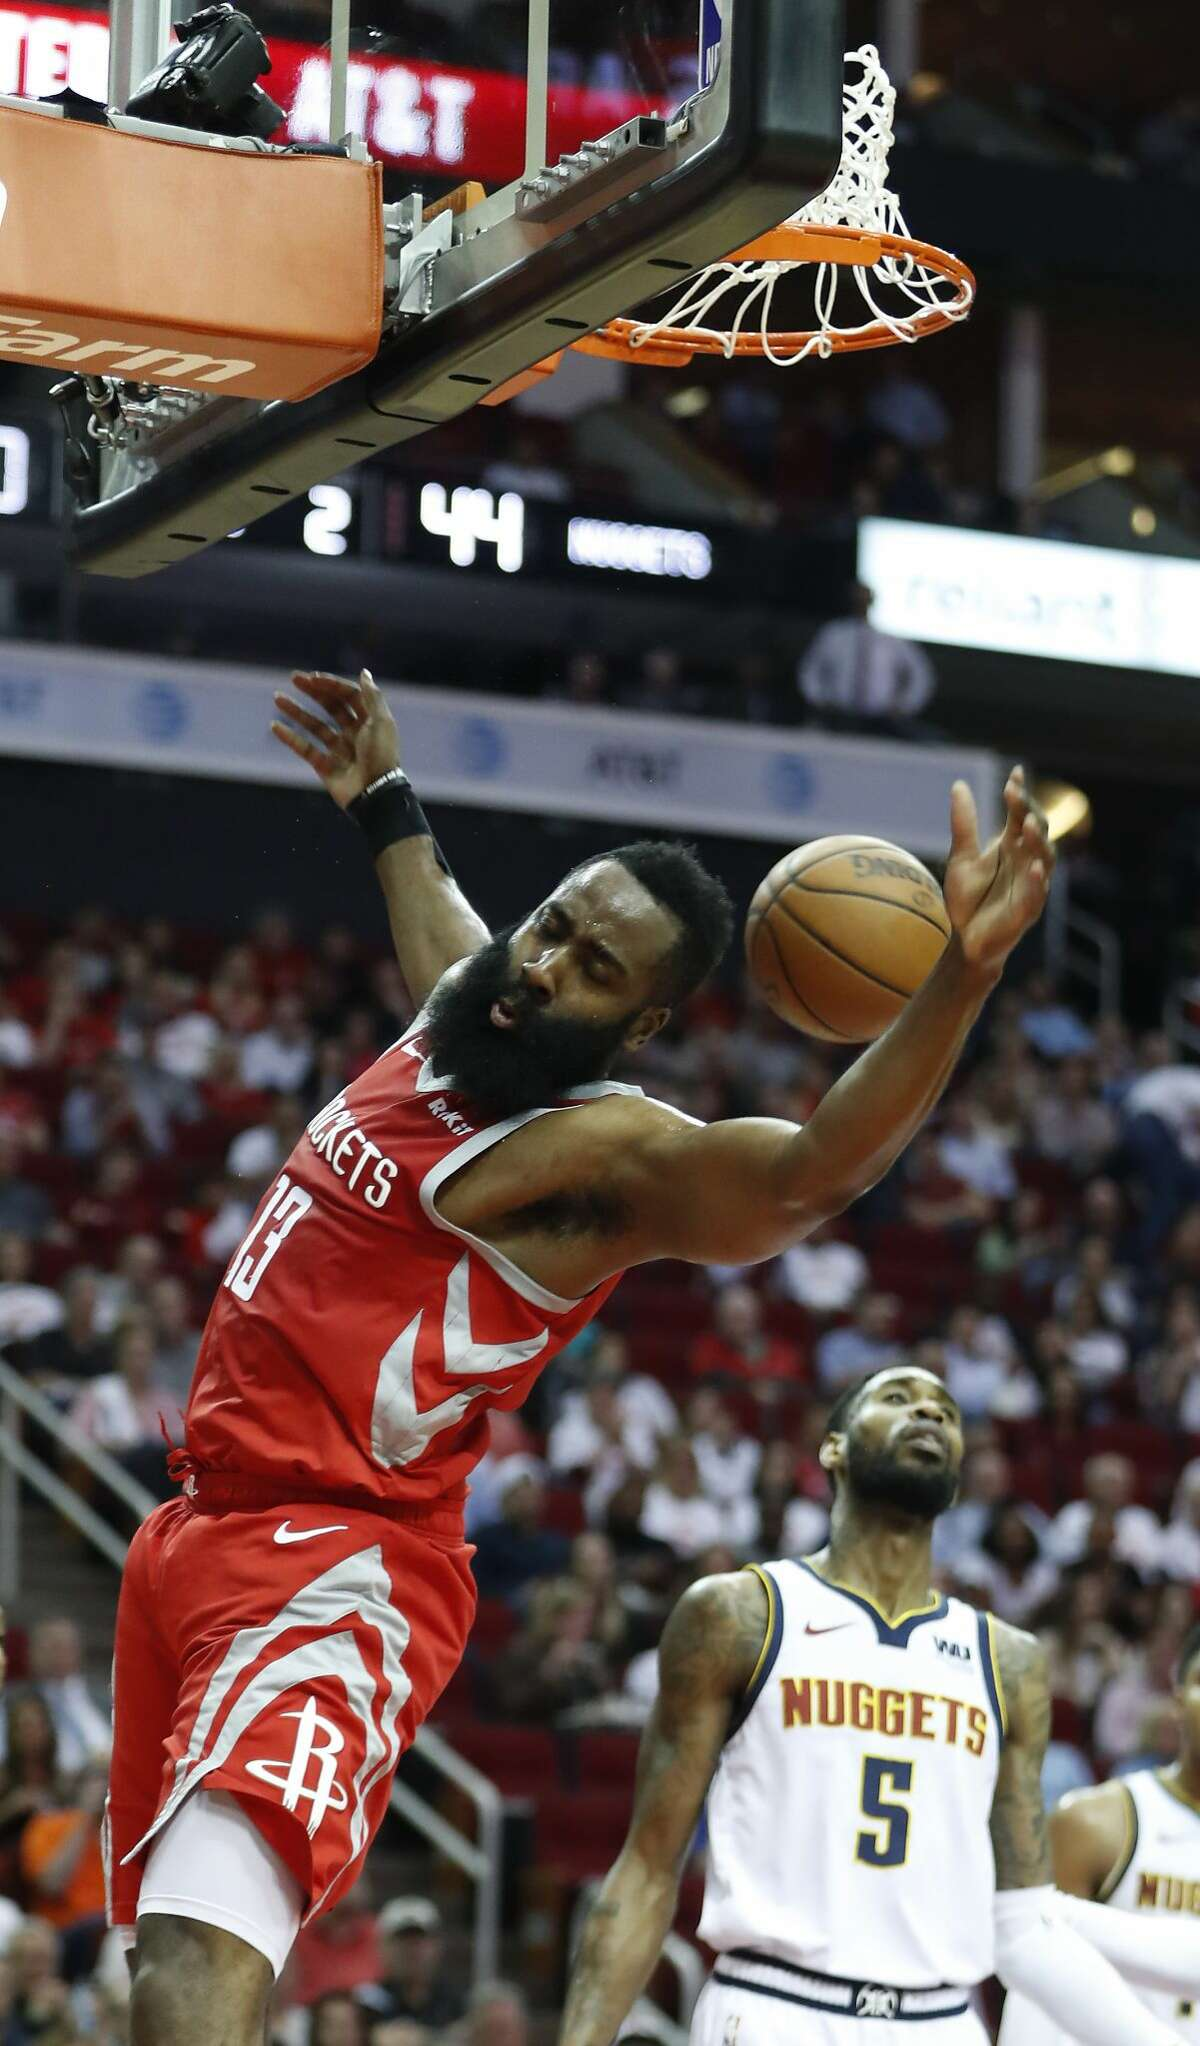 Houston Rockets guard James Harden (13) scores past Denver Nuggets guard Will Barton (5) during the first half of an NBA basketball game at Toyota Center on Thursday, March 28, 2019, in Houston.